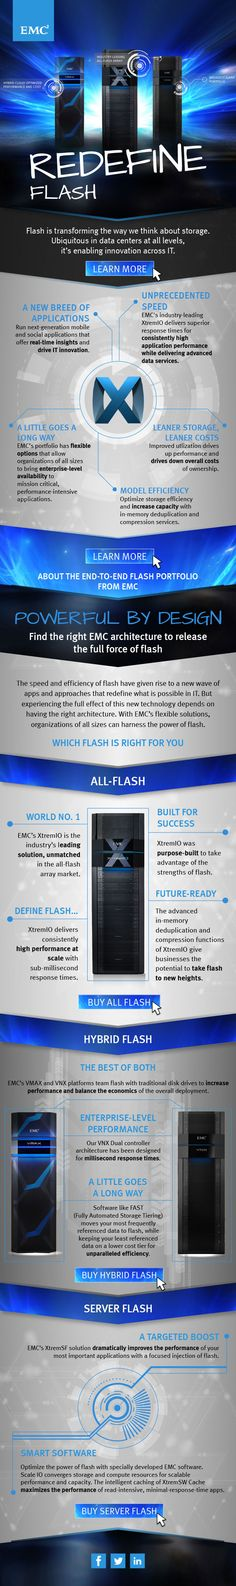 Redefine Flash: Flash Storage Solutions from EMC  Flash storage is transforming the way we think about storage. Ubiquitous in data centers at all levels, it's enabling innovation across IT. Learn more about EMC's end-to-end Flash technology portfolio and enterprise storage solutions with this infographic.